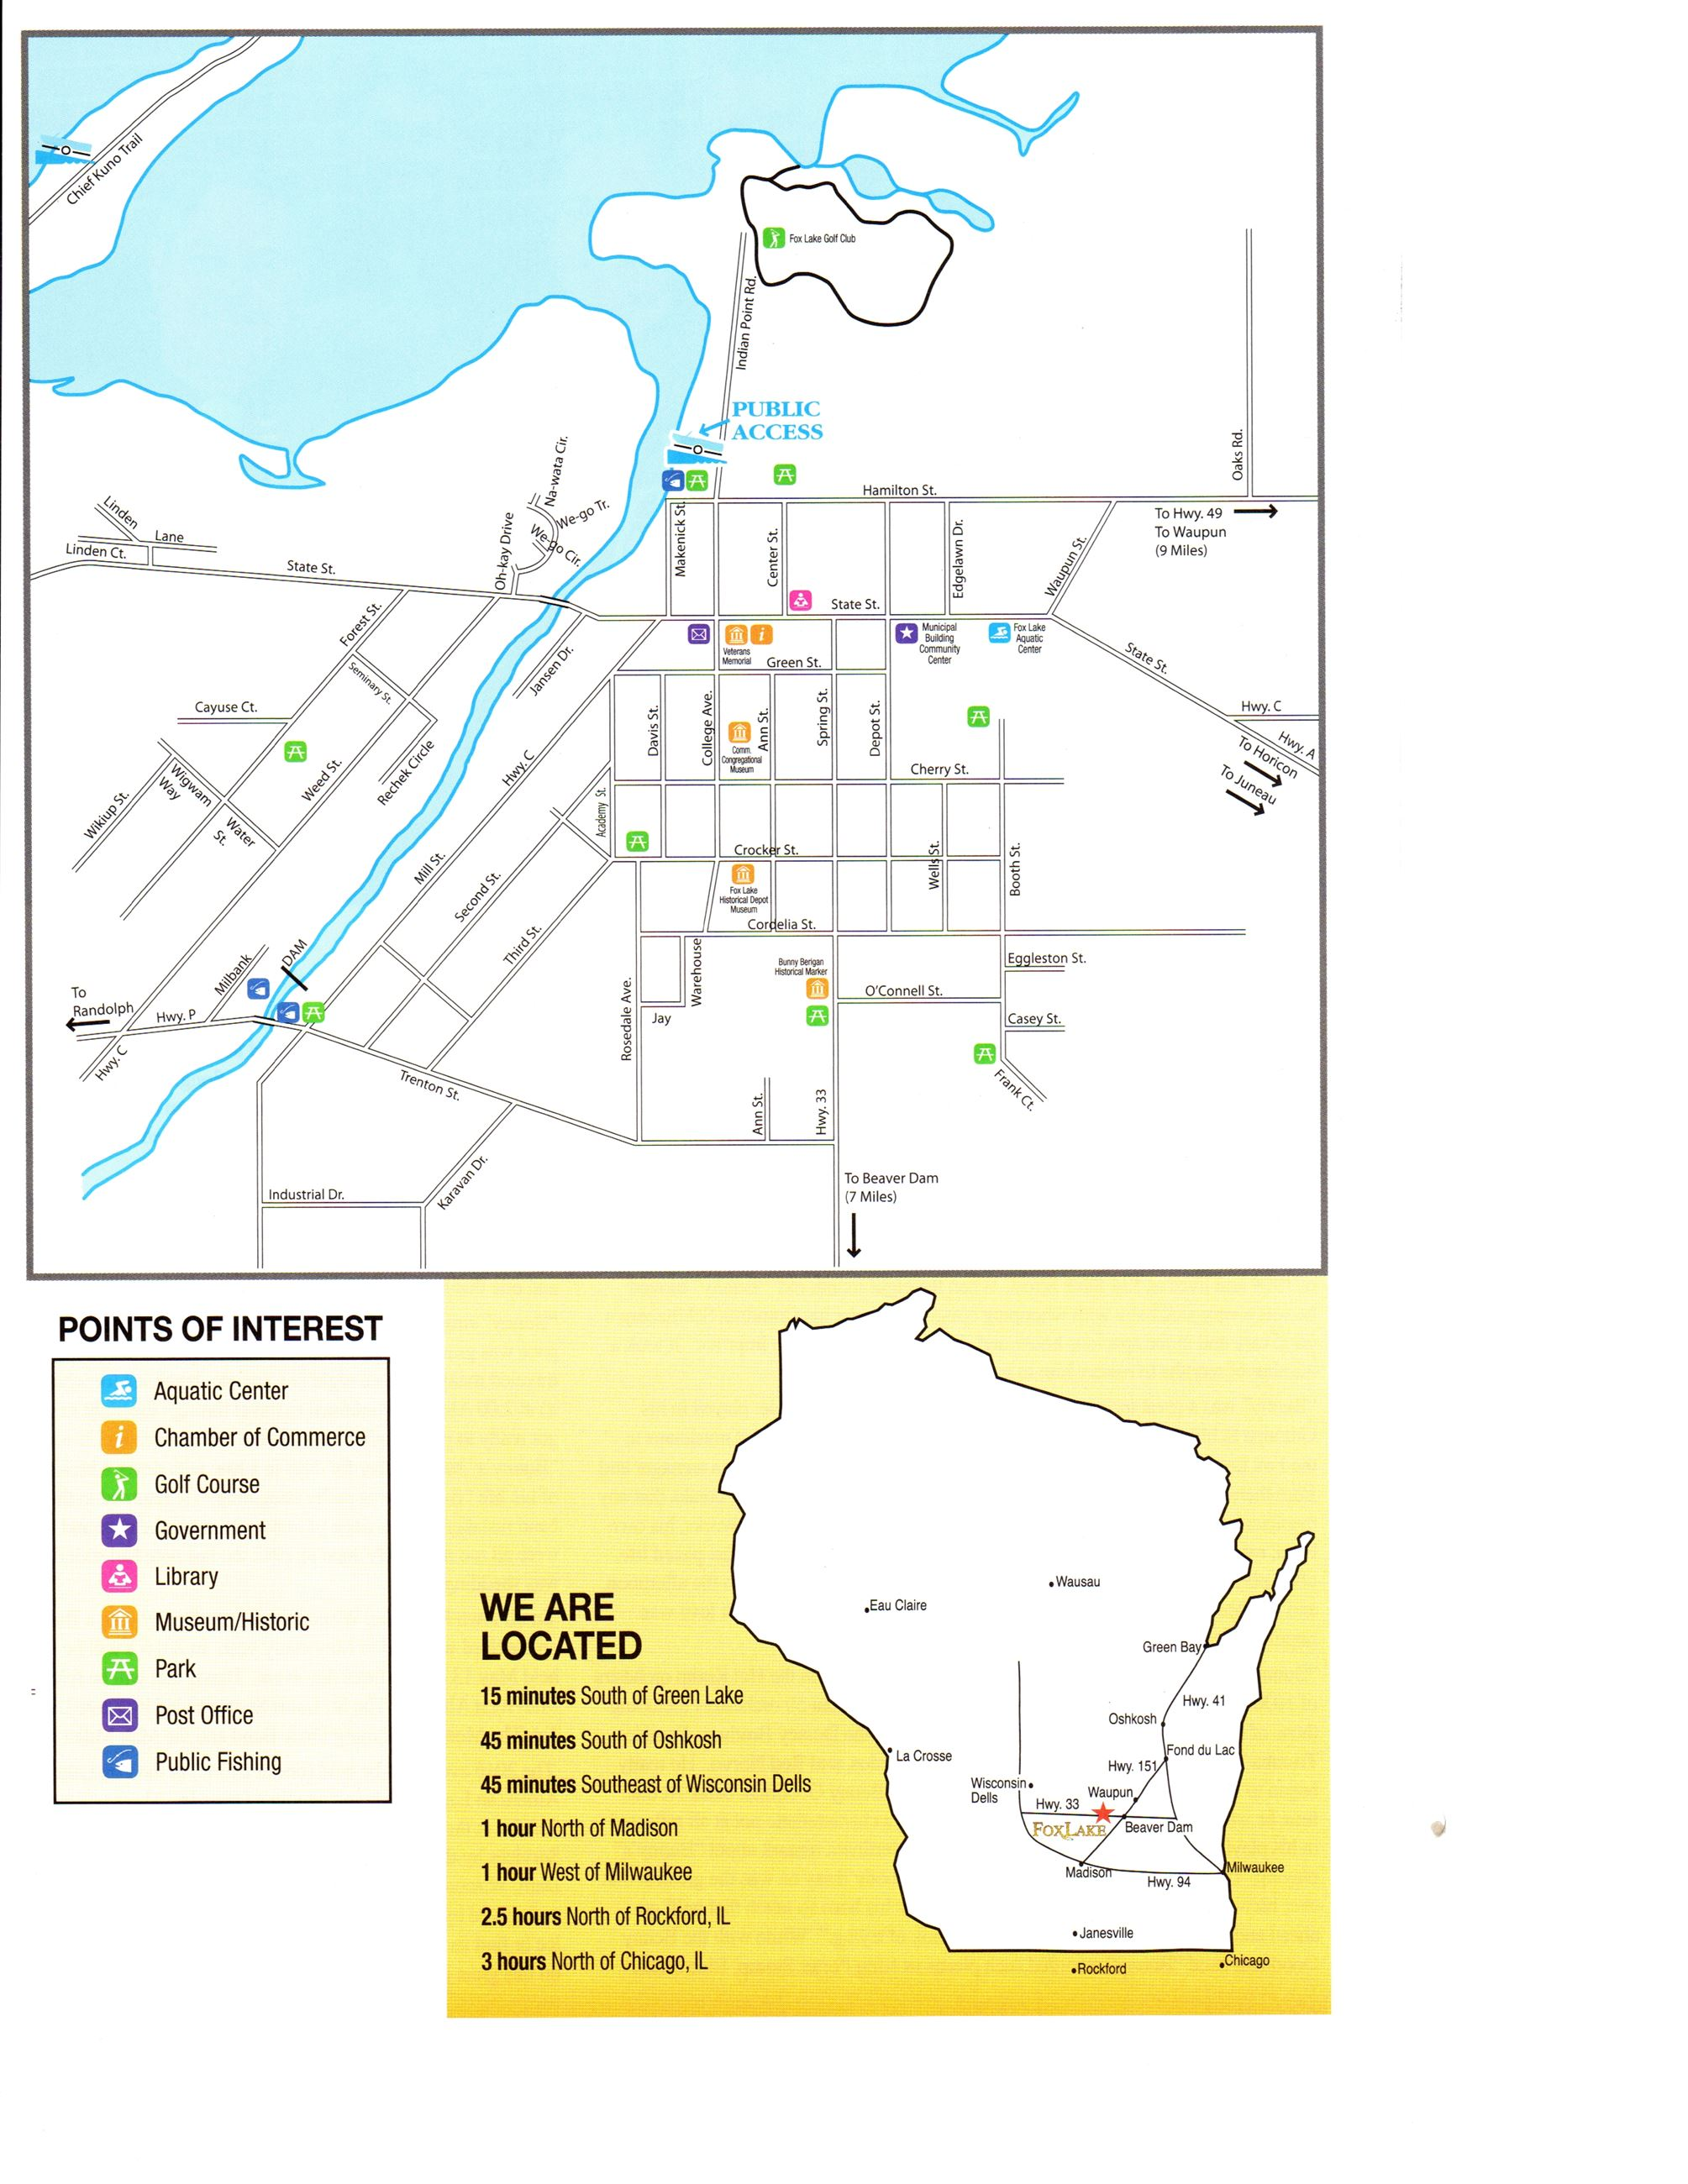 City Map | Fox Lake, WI City Of Milwaukee Map on city of la junta map, city of louisiana map, city of two rivers map, city of alcoa map, city of alamosa map, city of monona map, city of franklin map, city of broomfield map, city of fort smith map, city of bloomfield hills map, city of oklahoma map, city of milwaukie map, city of rice lake map, city of panama city map, city of delavan map, city of st john's map, city of marquette map, city of atlantic city map, city of brooklyn map, city of youngstown map,